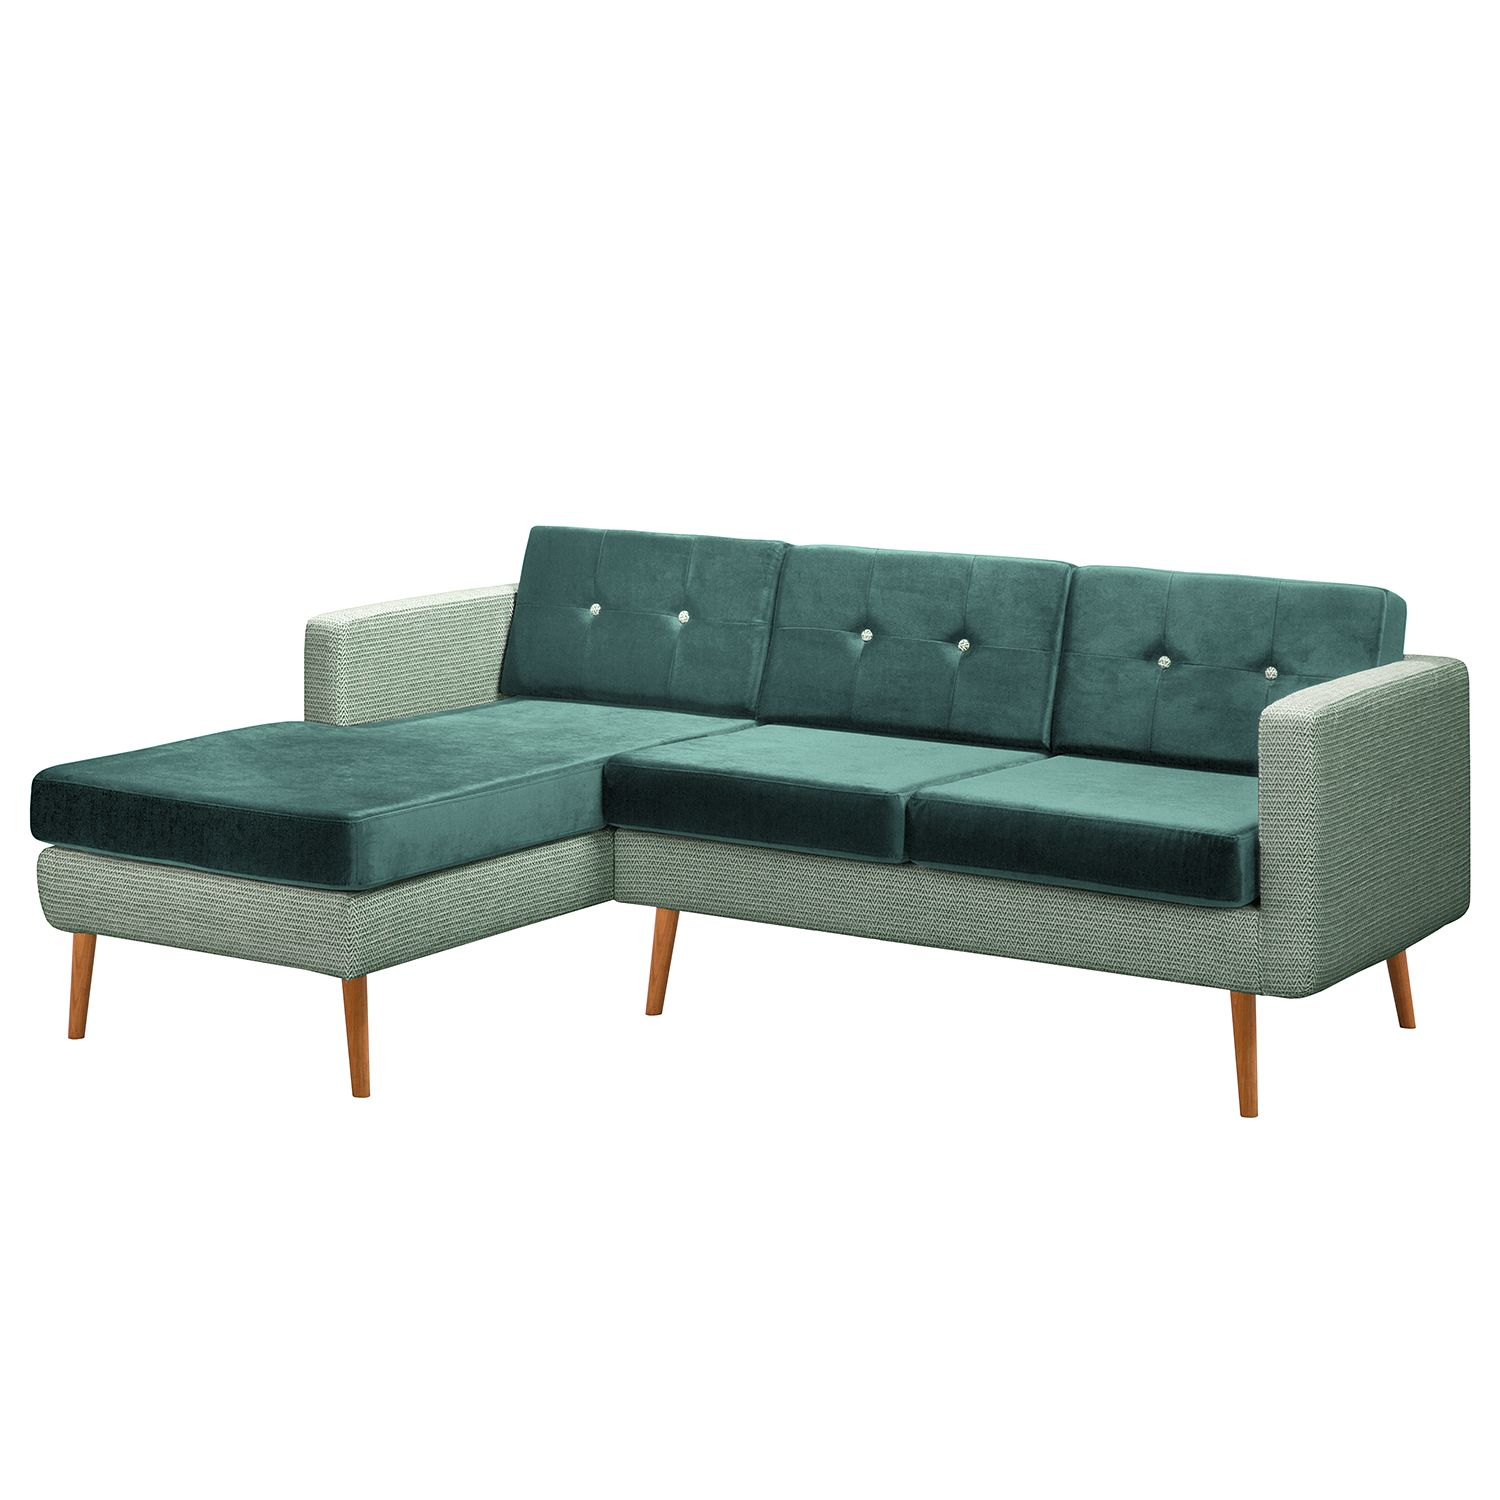 home24 Ecksofa Croom V